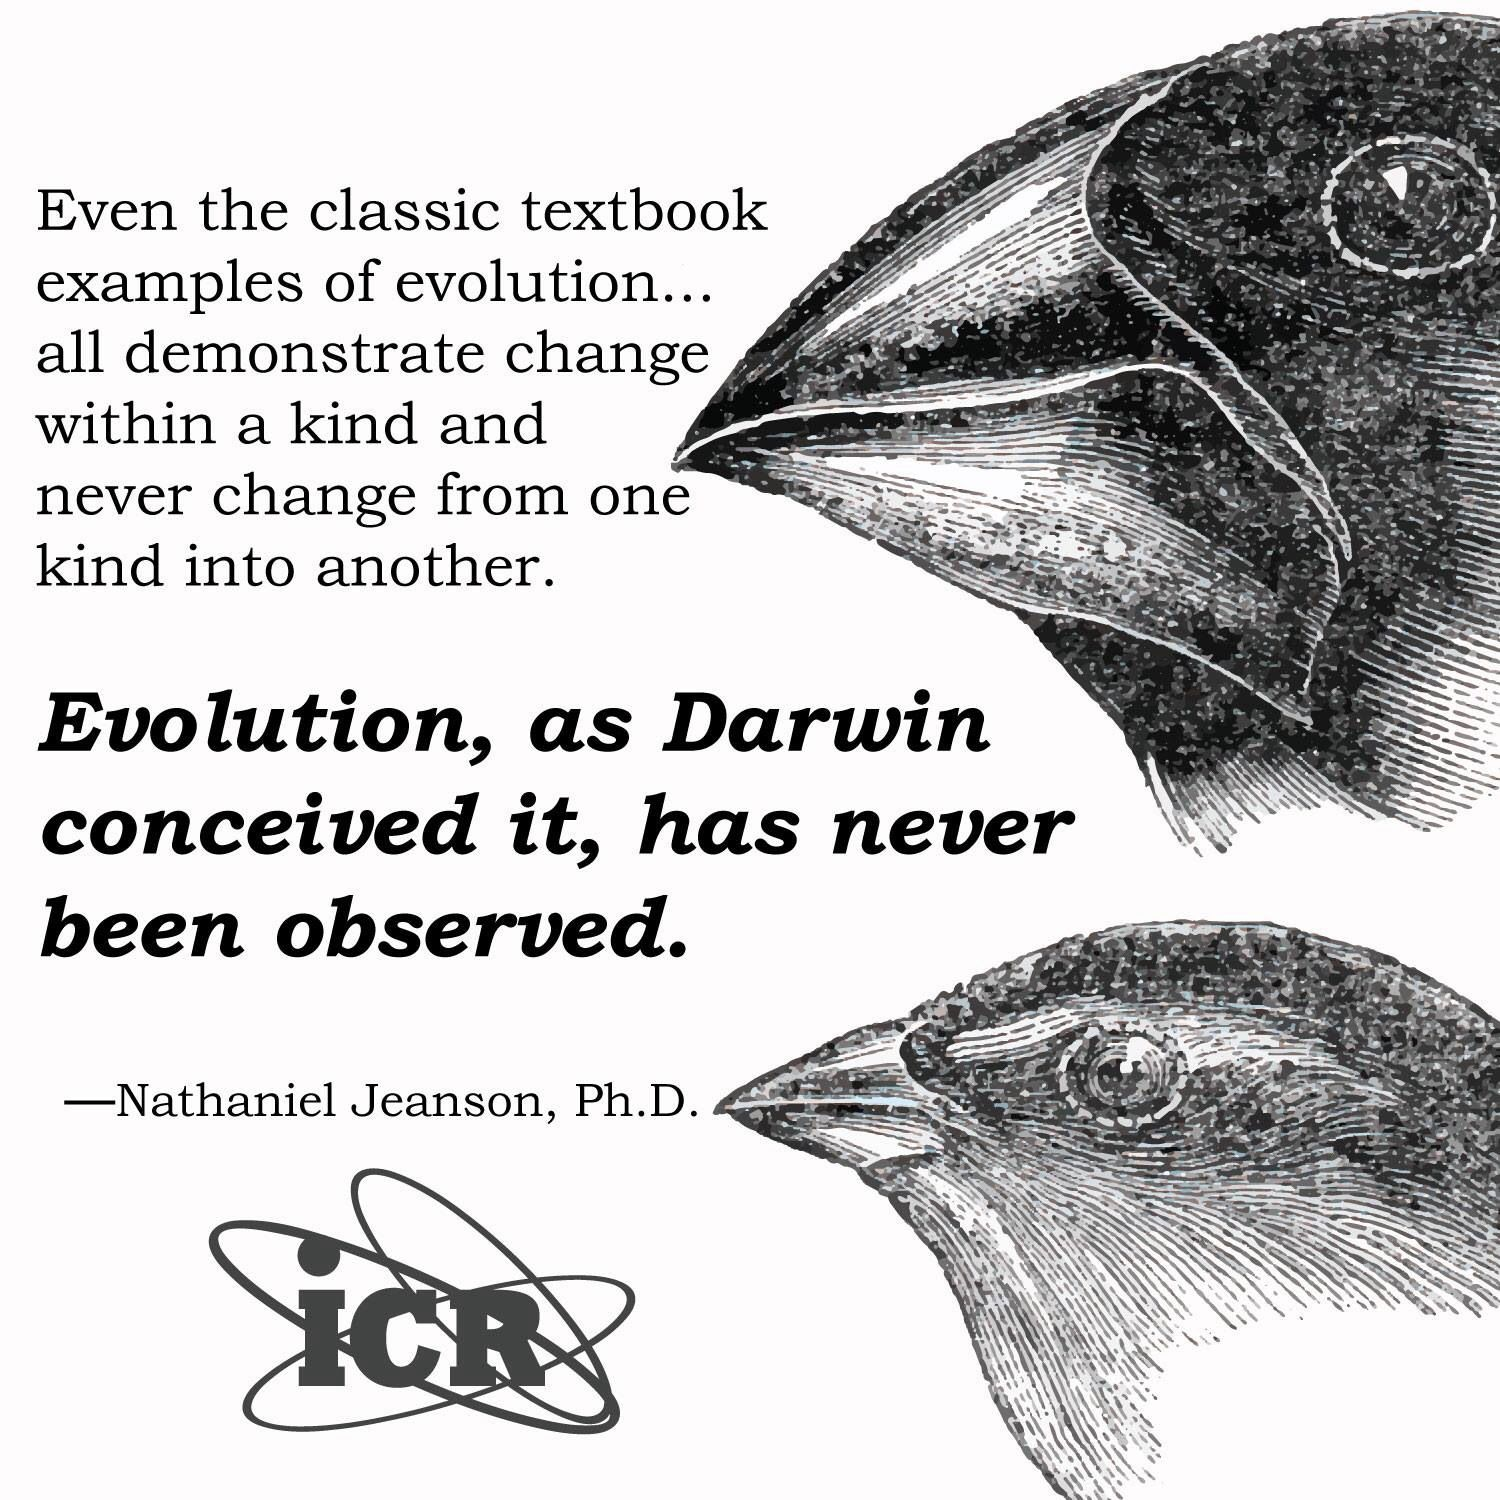 I want to write an essay on evolution vs creationism? but i never read the bible?